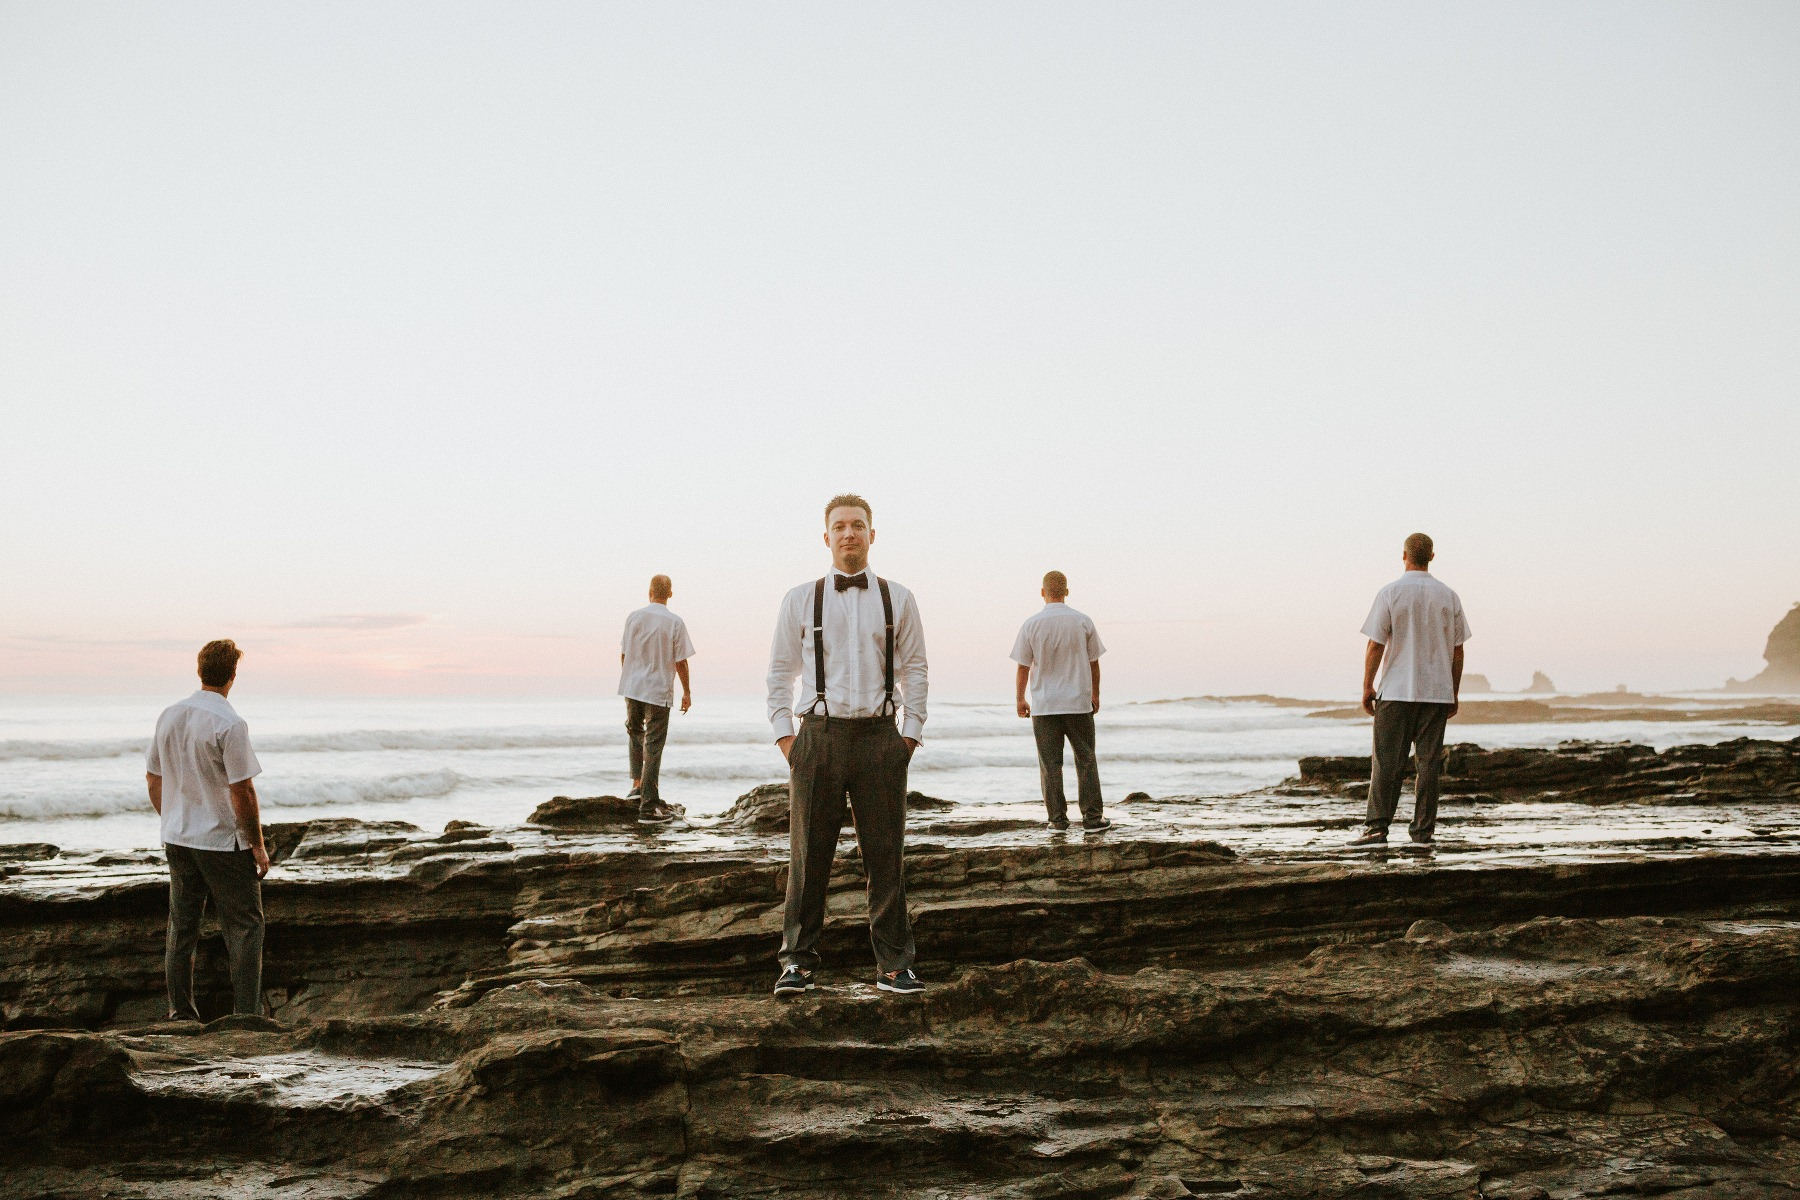 Groomsmen photo ideas for beach wedding Costa Rica